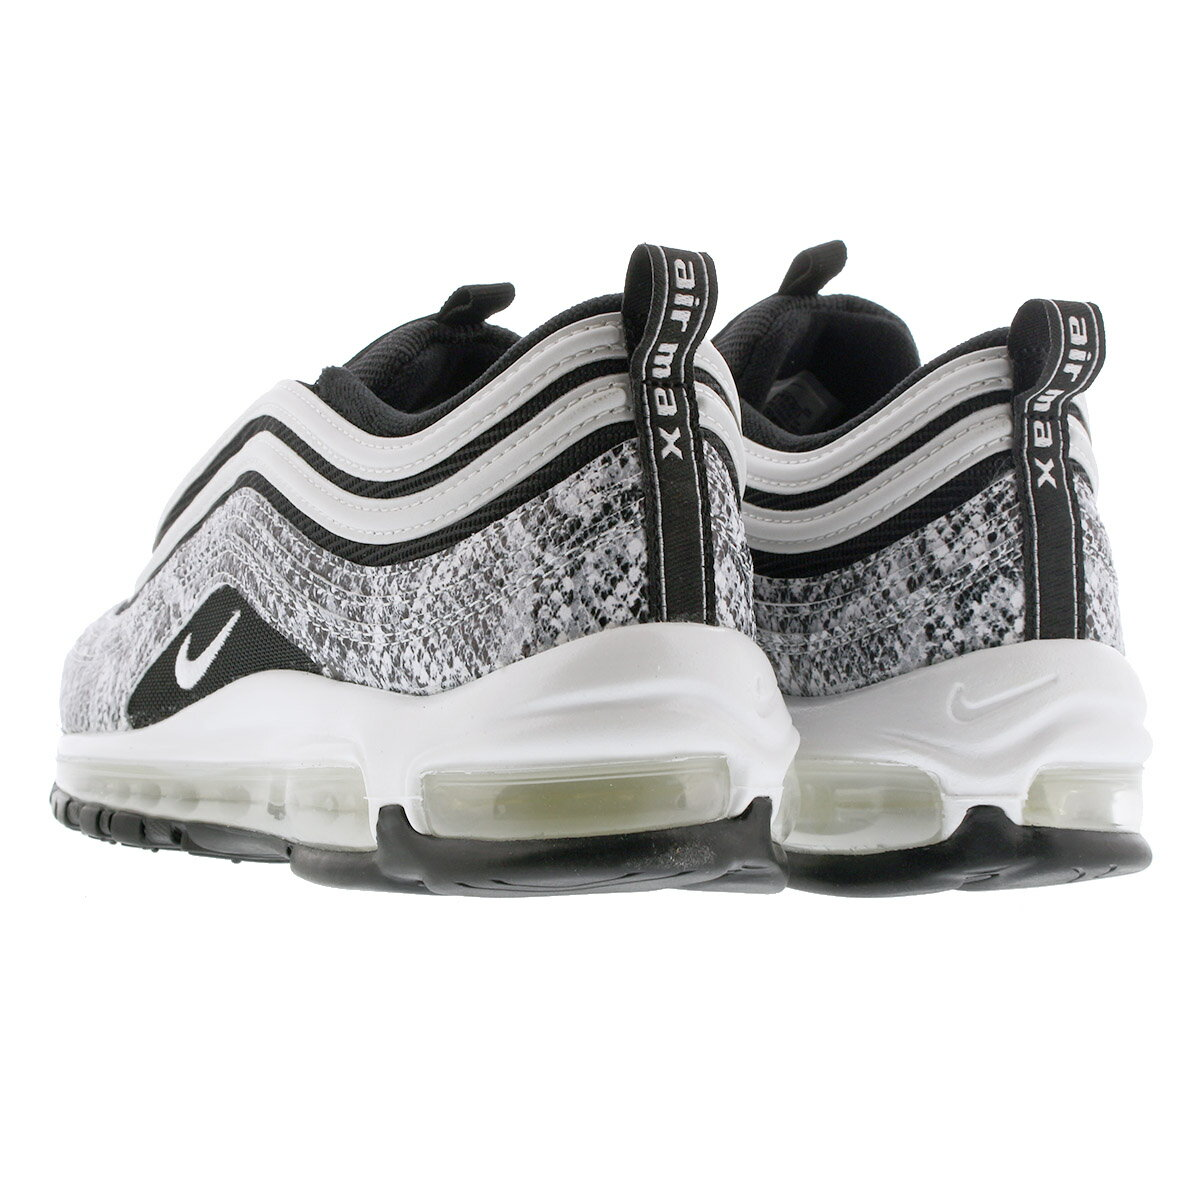 Nike Air Max 97 Snakeskin CT1549 001 Release Date SBD